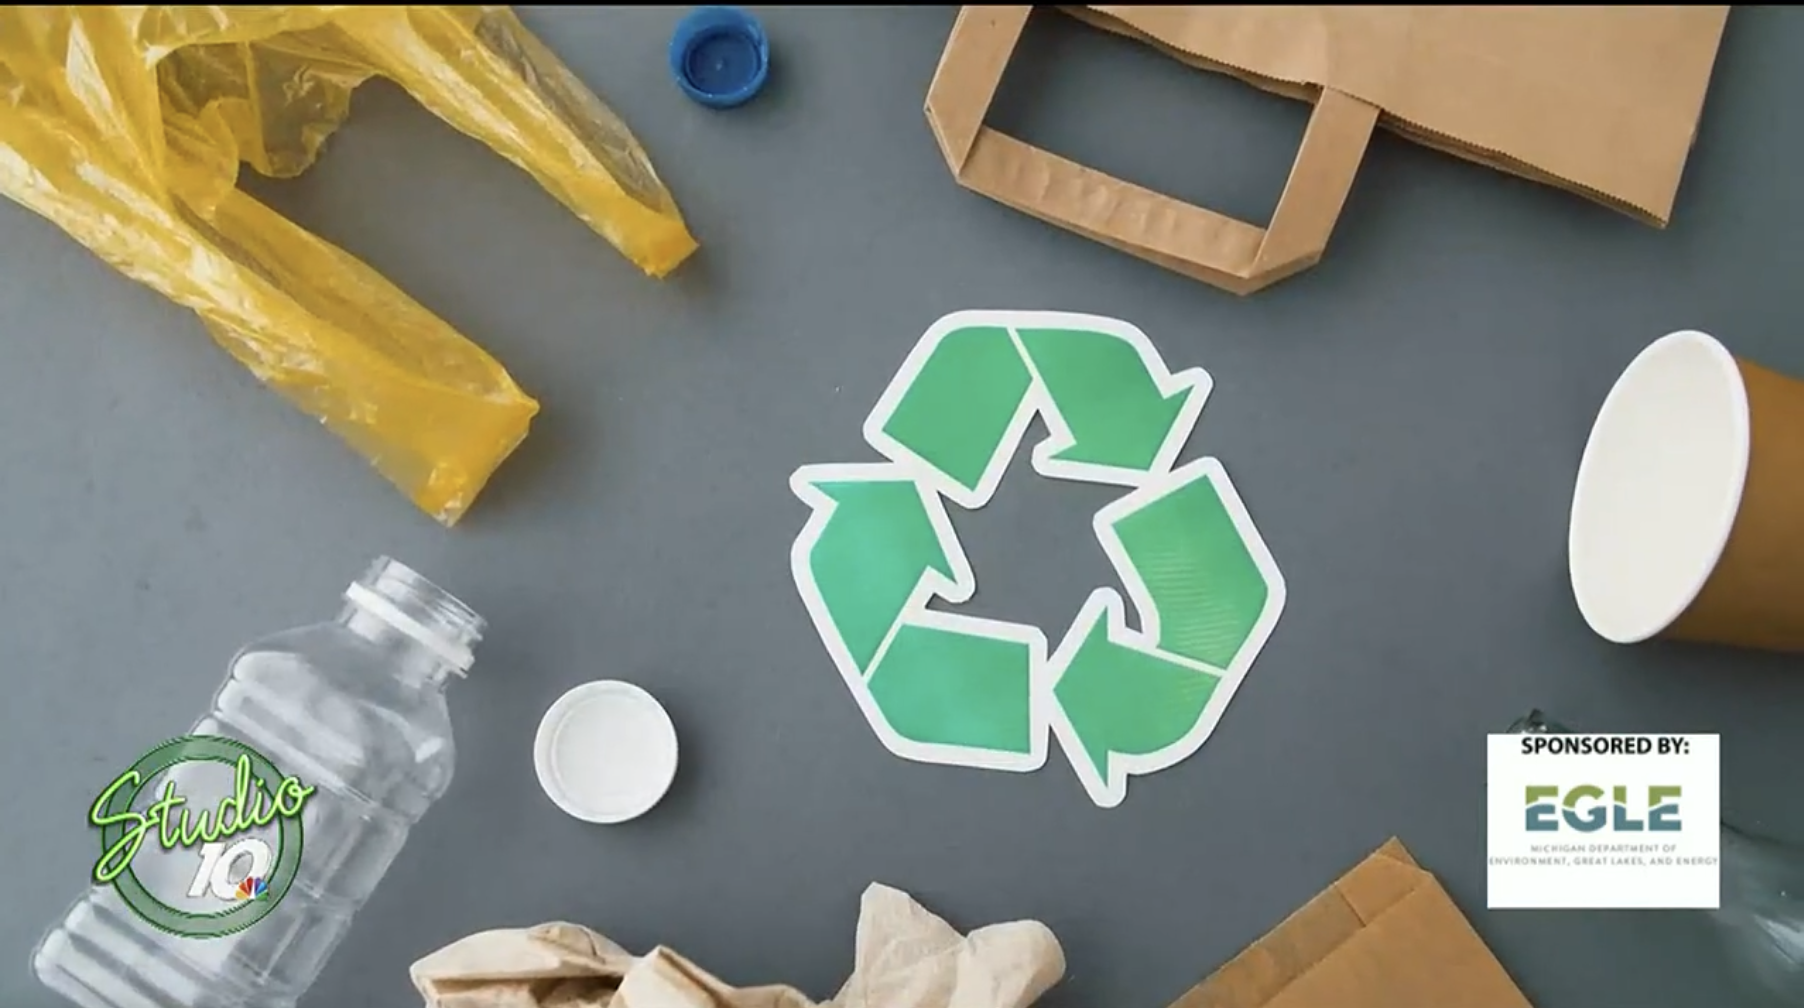 A recycling symbol surrounded by recyclable materials